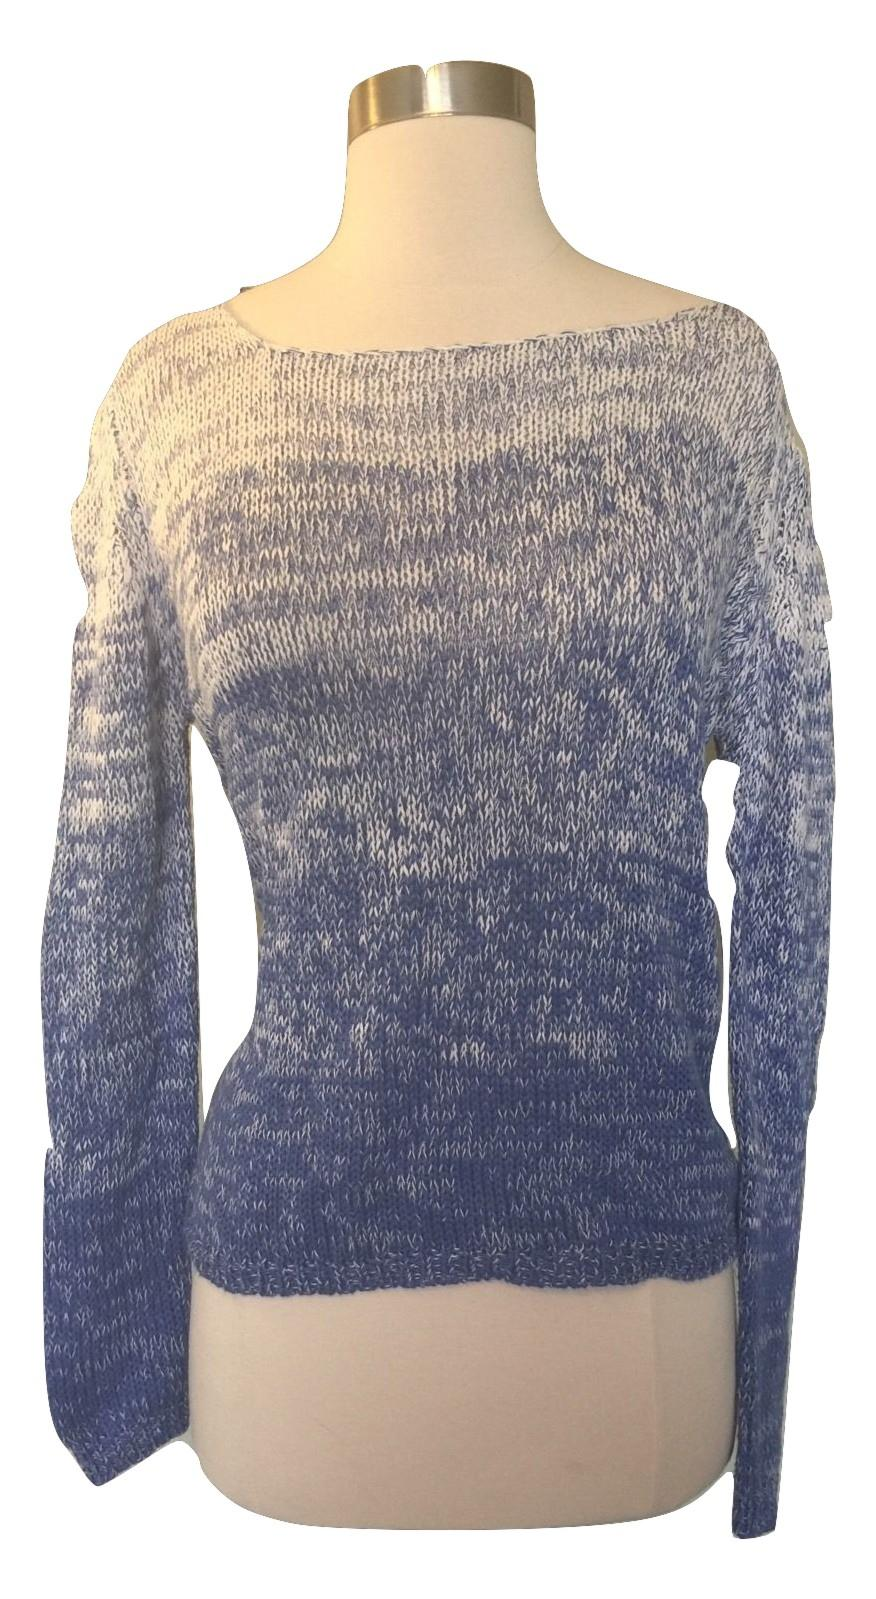 Rd style ombre sweater dresses